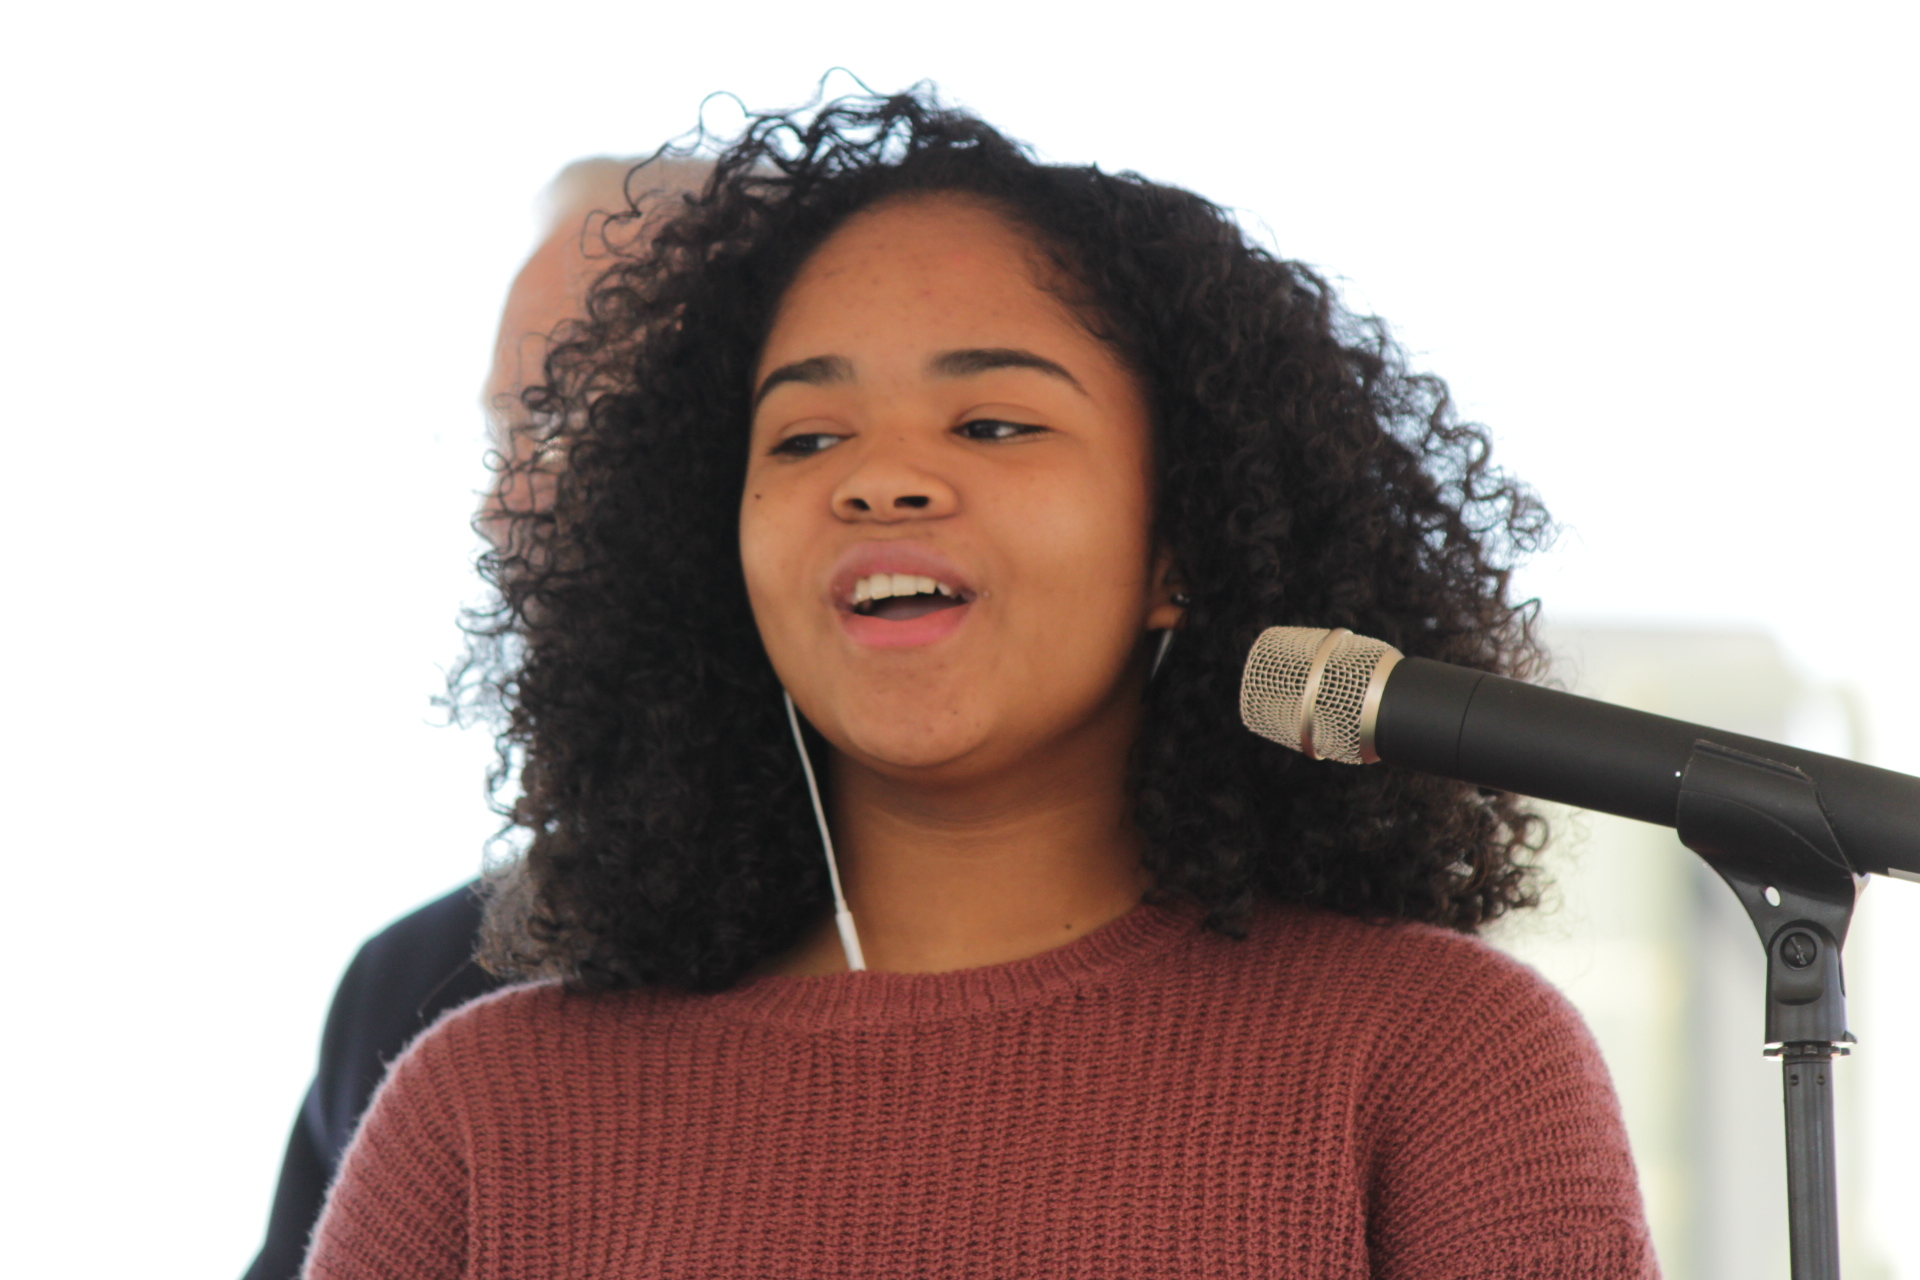 Local High School Student Lilian Nell Diaz singing the National Anthem